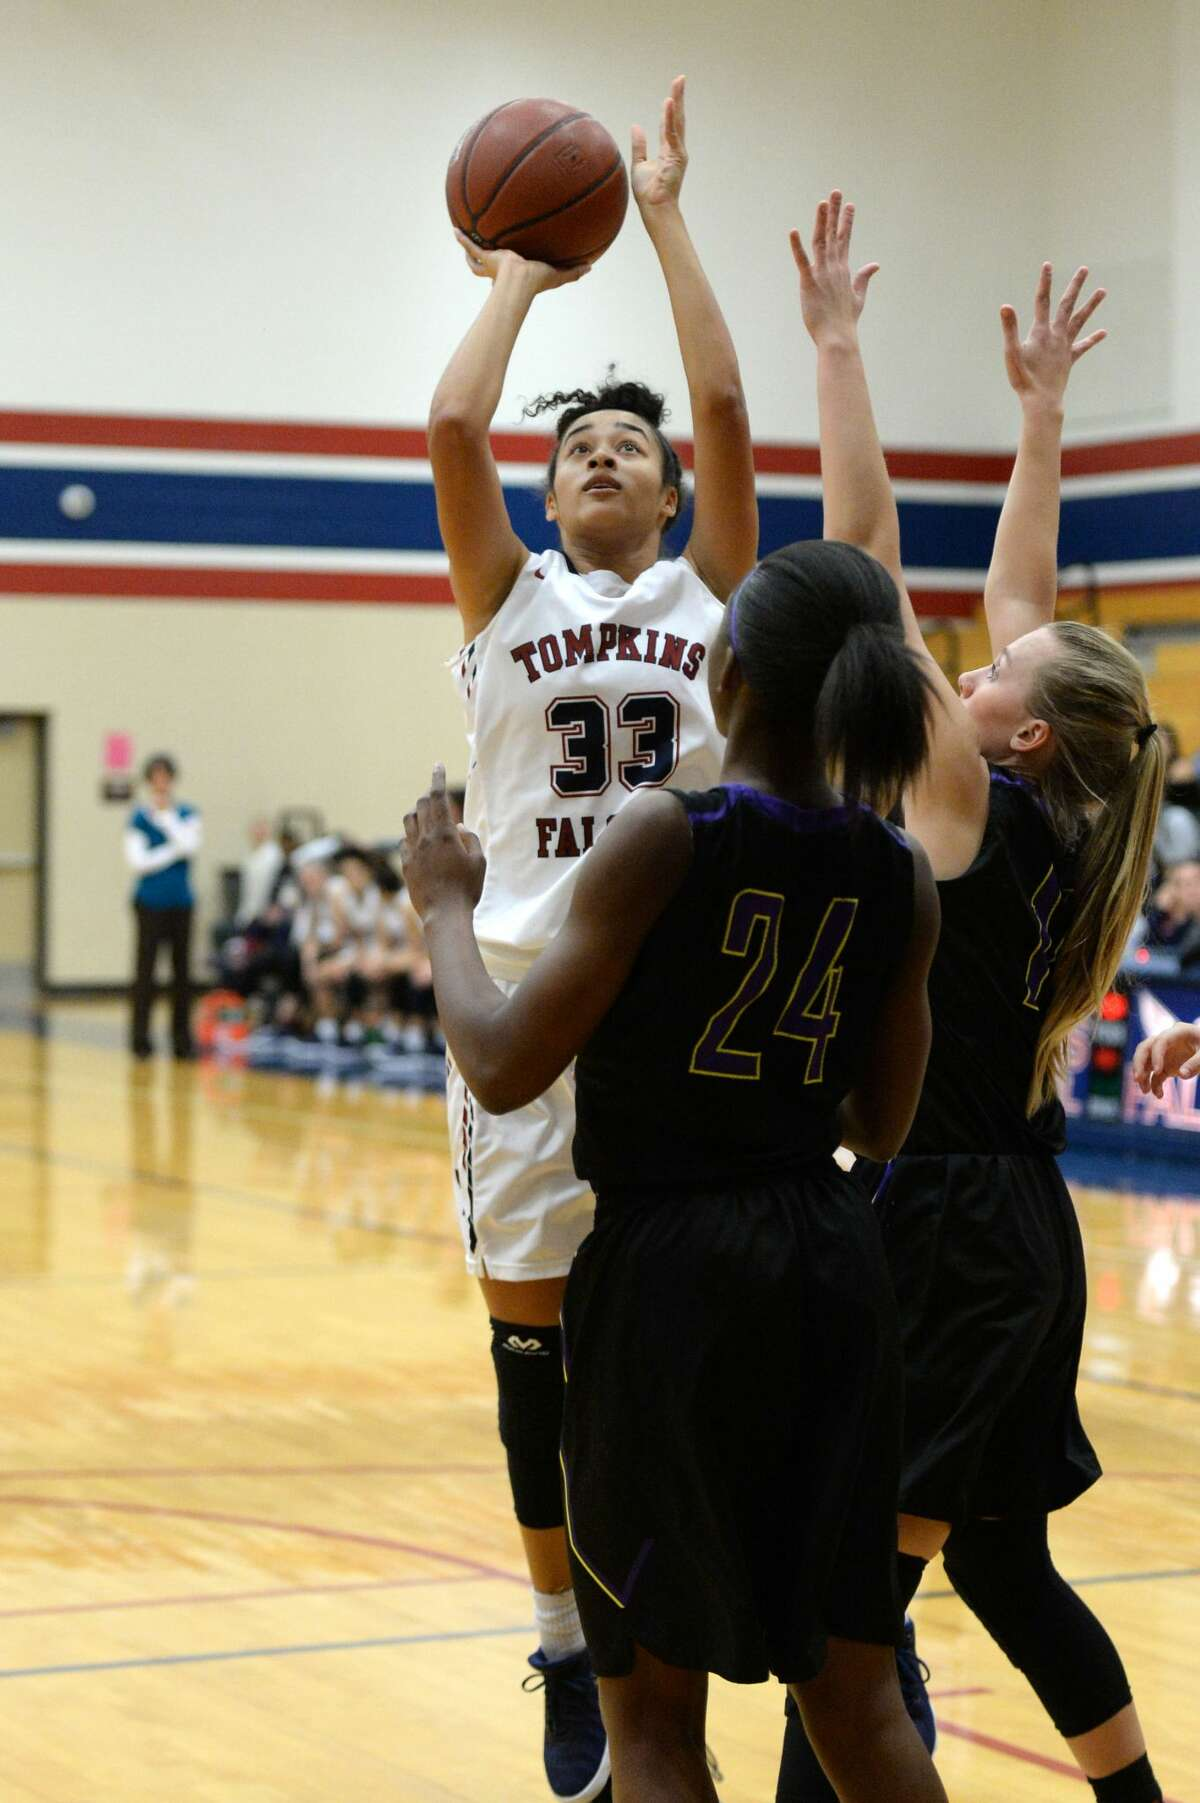 PHOTOS: Tompkins vs. Montgomery Mia Hill (33) of Tompkins takes a shot during a first round game in the Phillips 66 Katy Classic between the Tompkins Falcons and the Montgomery Bears on Thursday November 30, 2017 at Tompkins HS, Katy, TX.